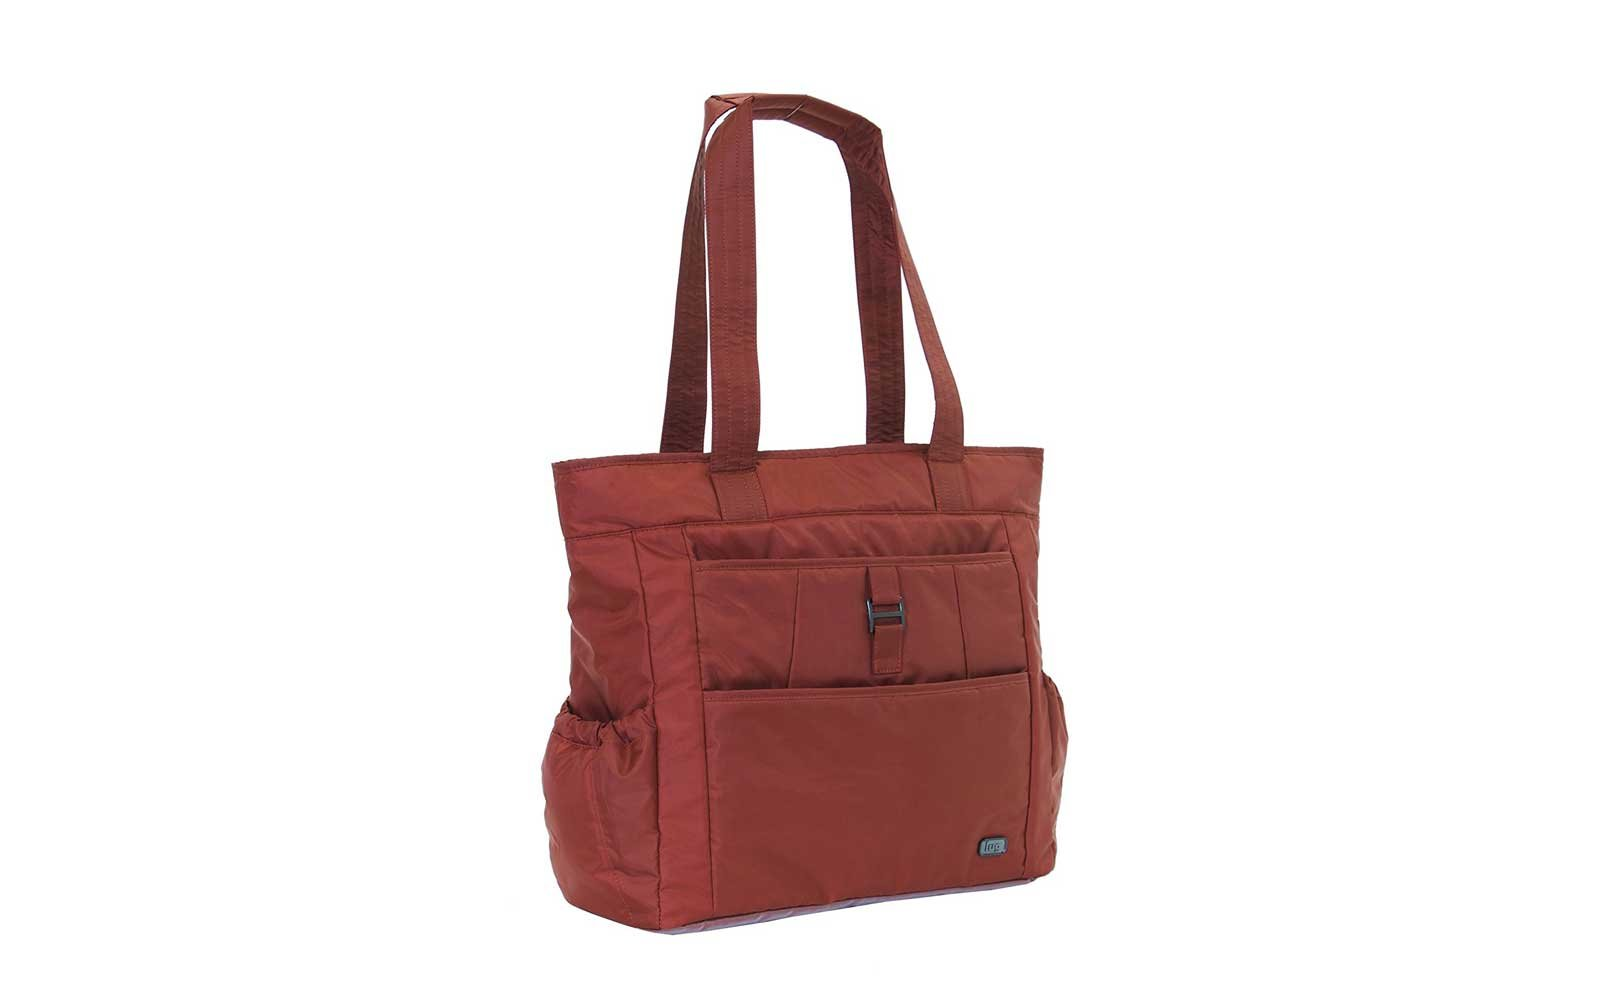 99ad8789c5 Lug Adagio Destination Tote. Anti-Theft Bags